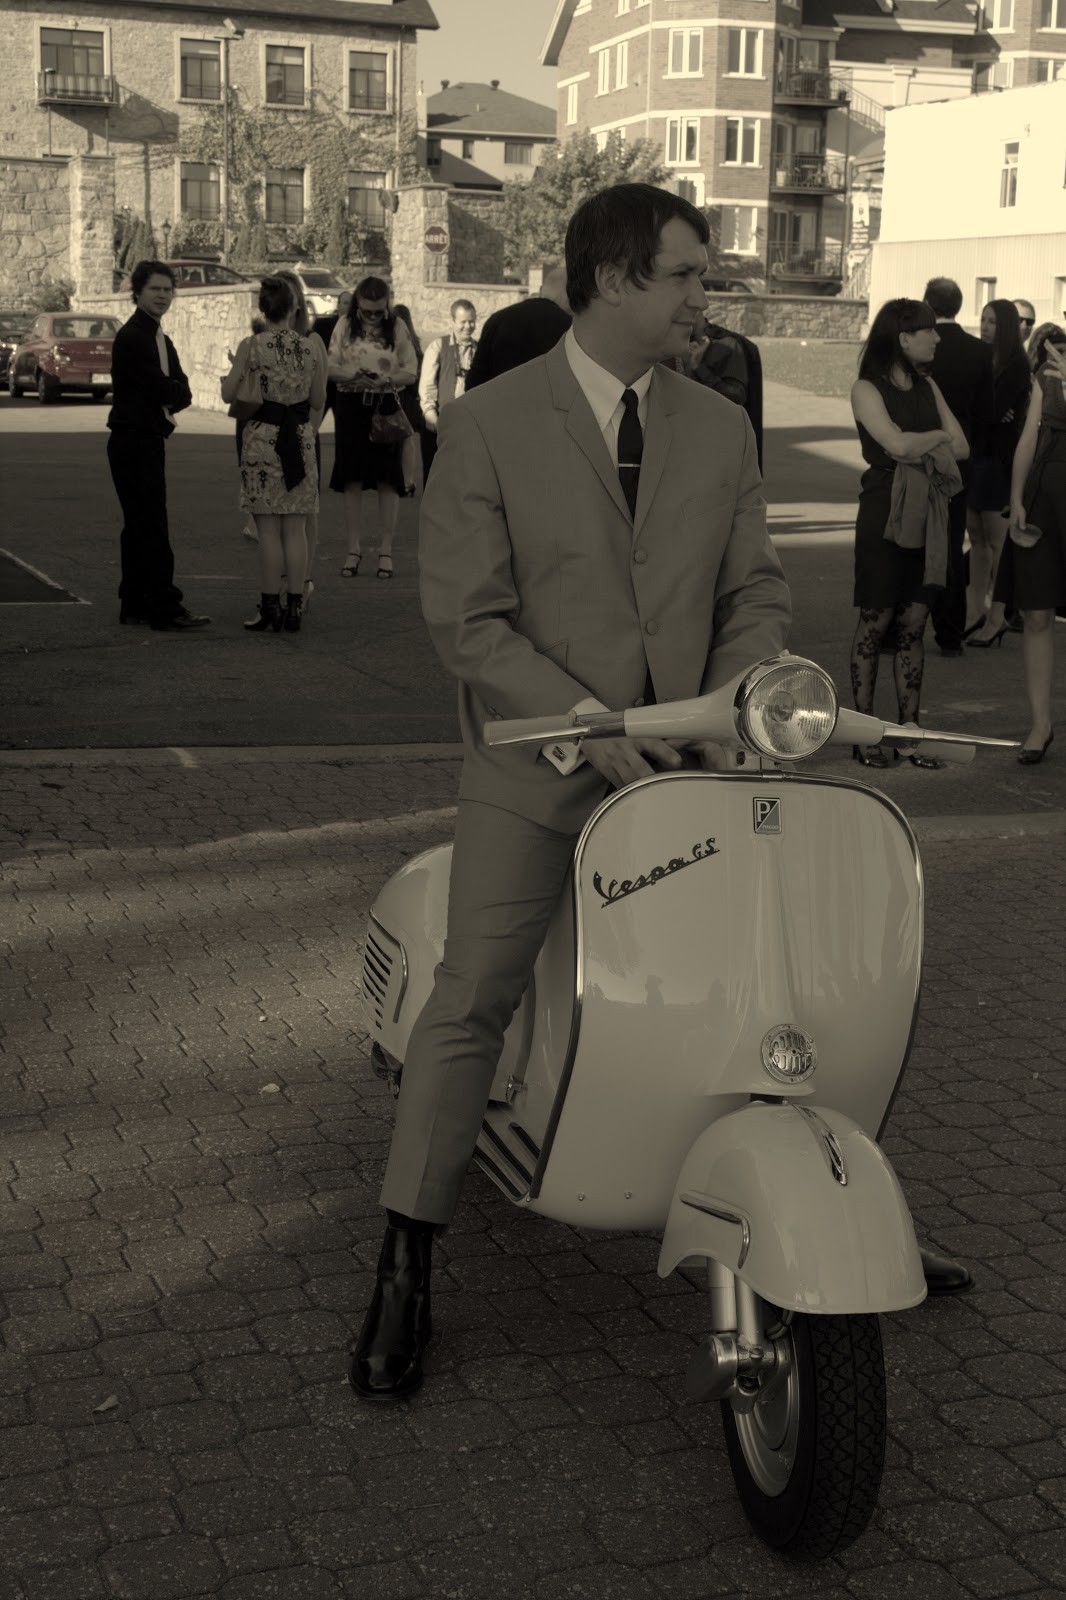 160 Best Actresses Images On Pinterest: Parka Avenue: What Is The Ultimate Mod Scooter? Vespa Vs